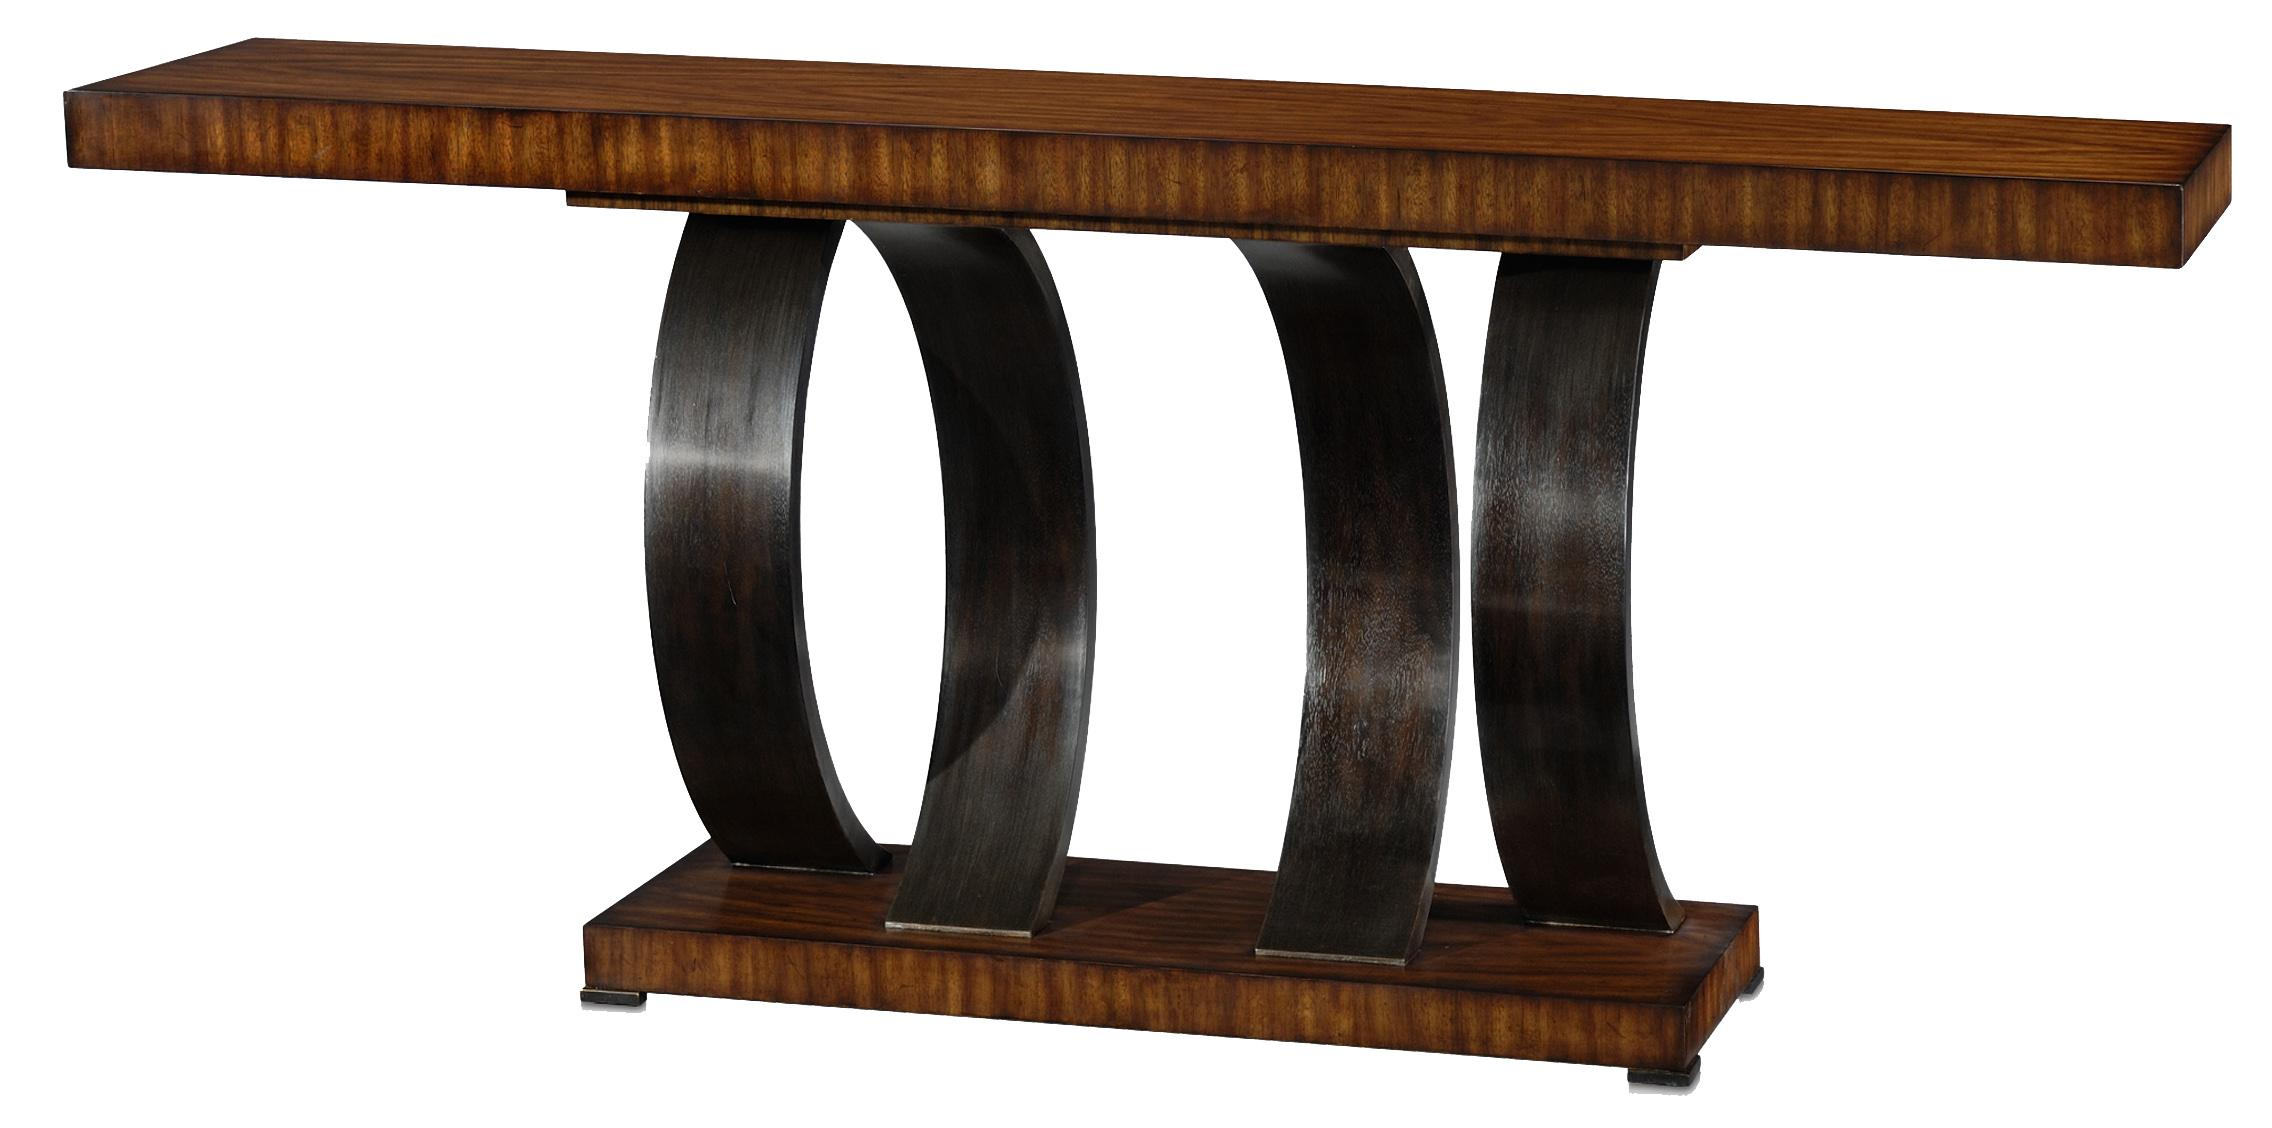 Vanucci Eclectics Walnut Console Table by Theodore Alexander at Baer's Furniture